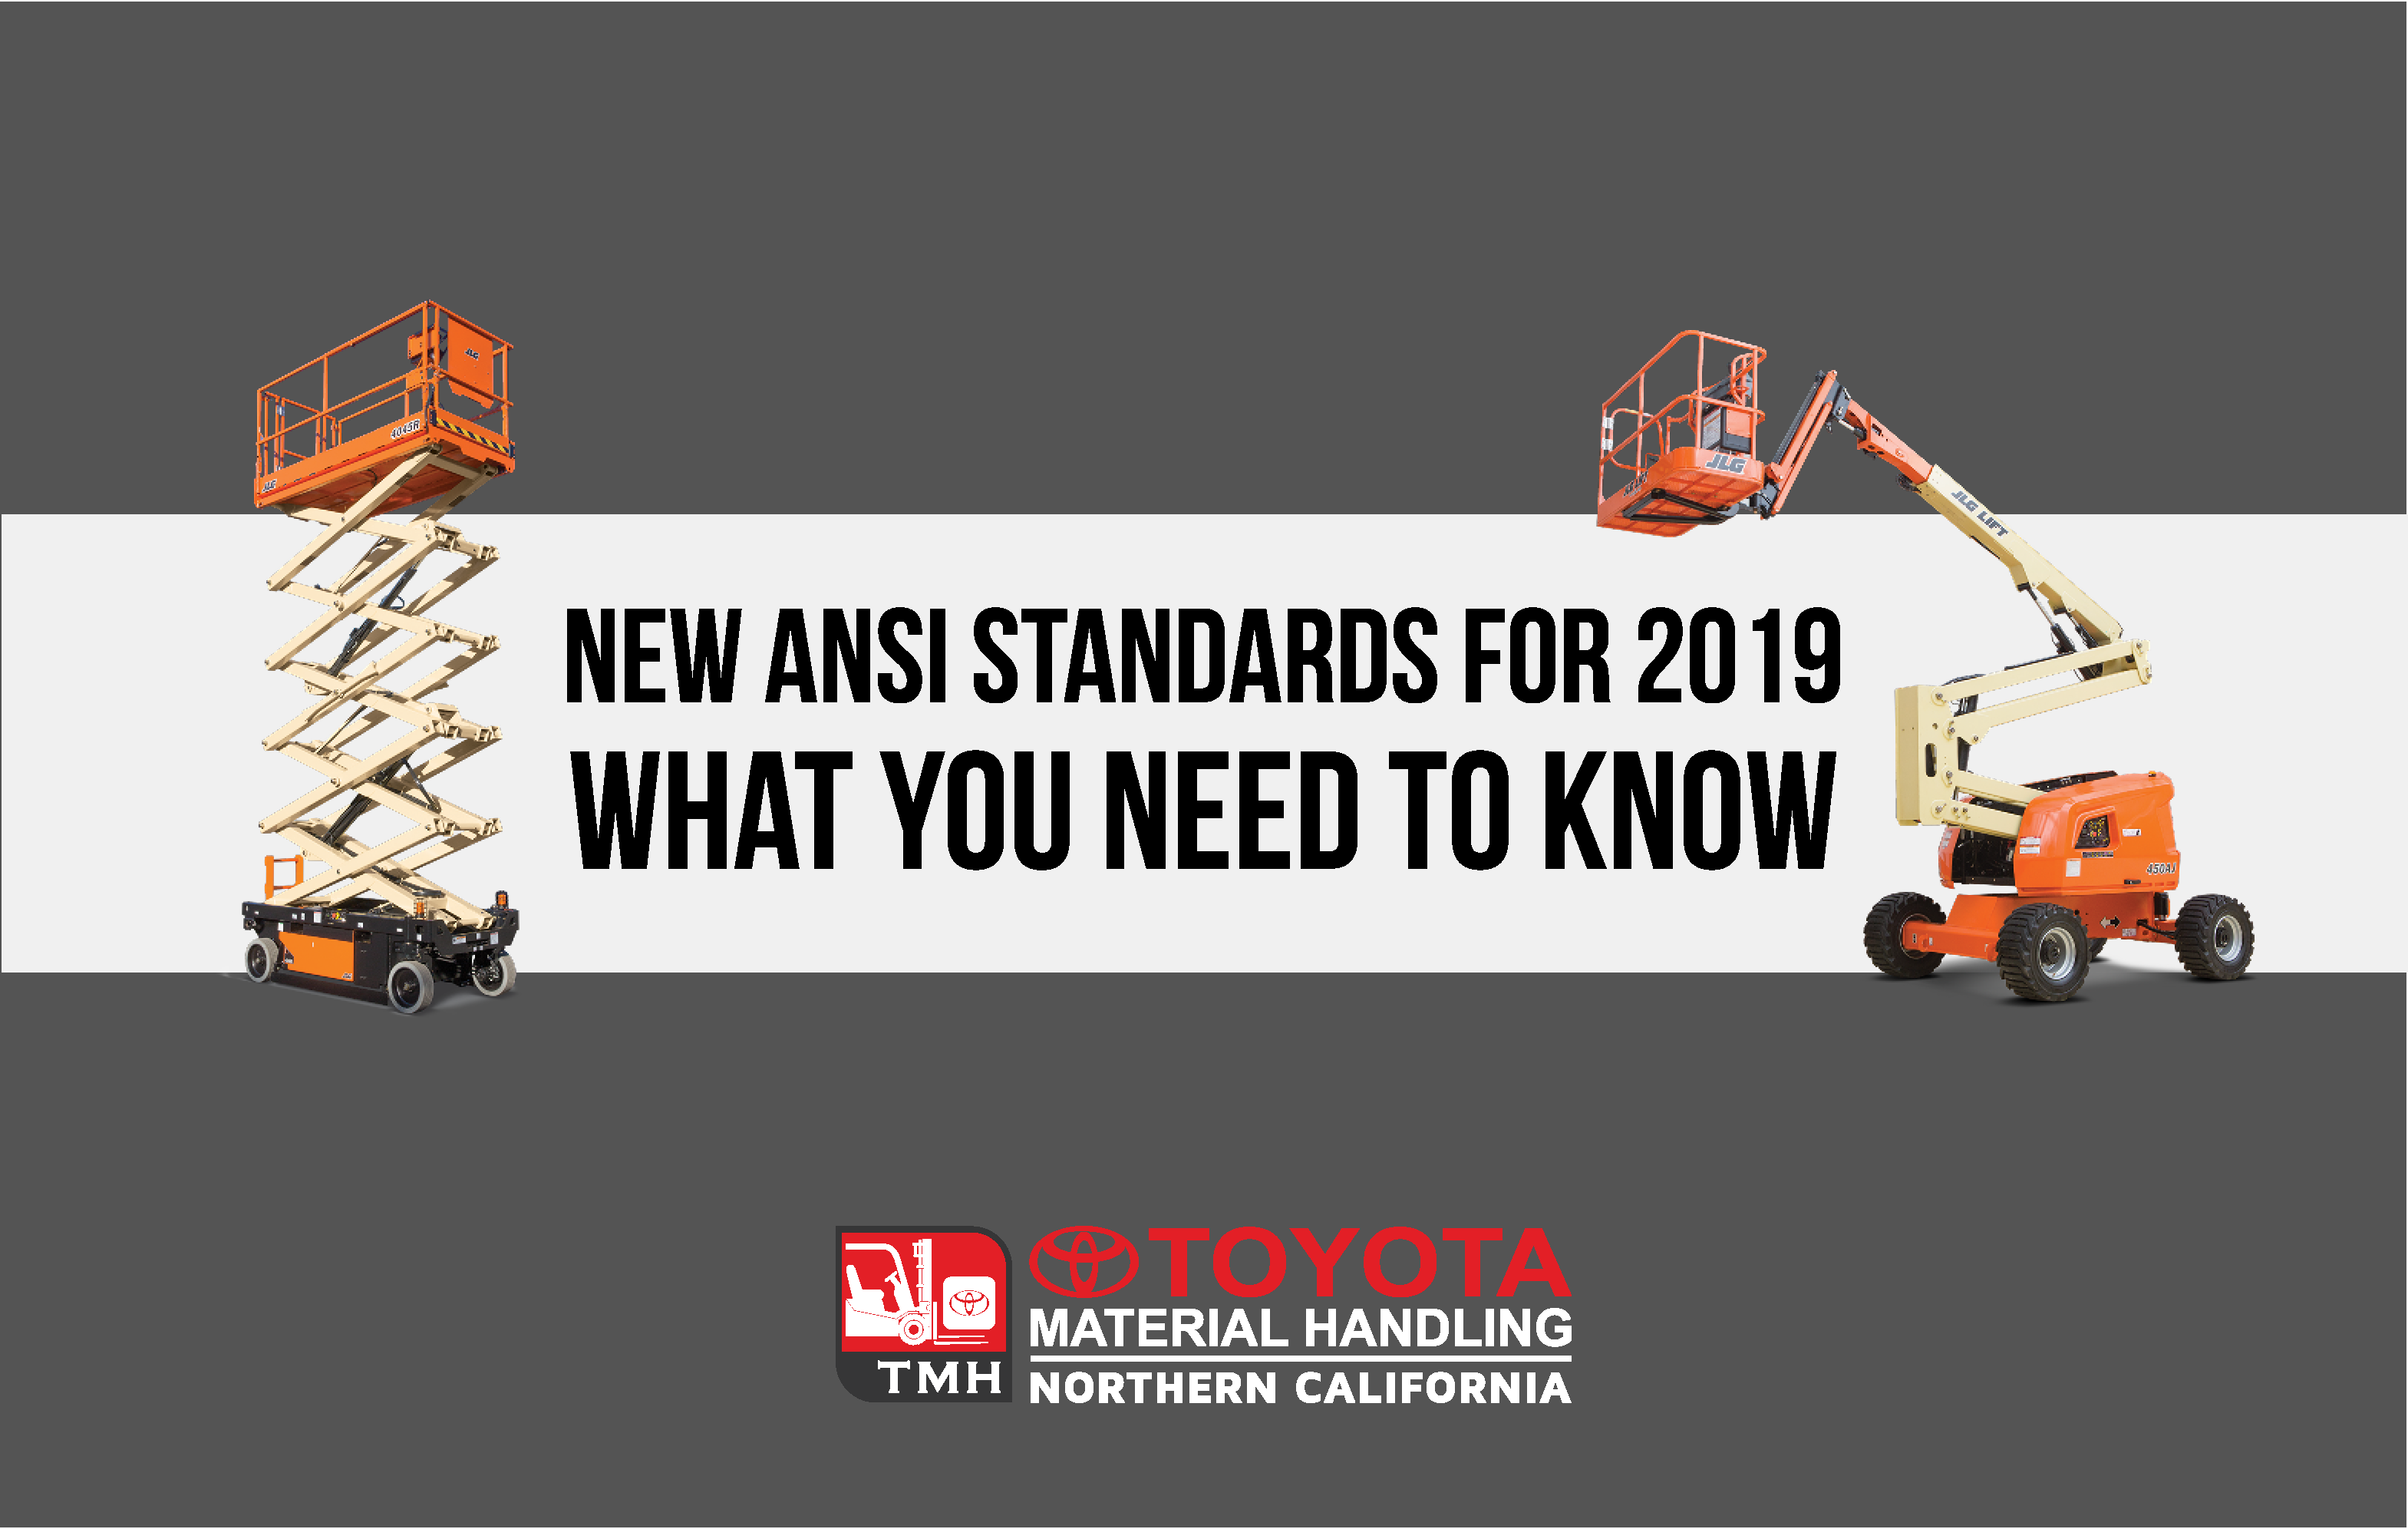 New ANSI Standards for 2019 - What You Need to Know